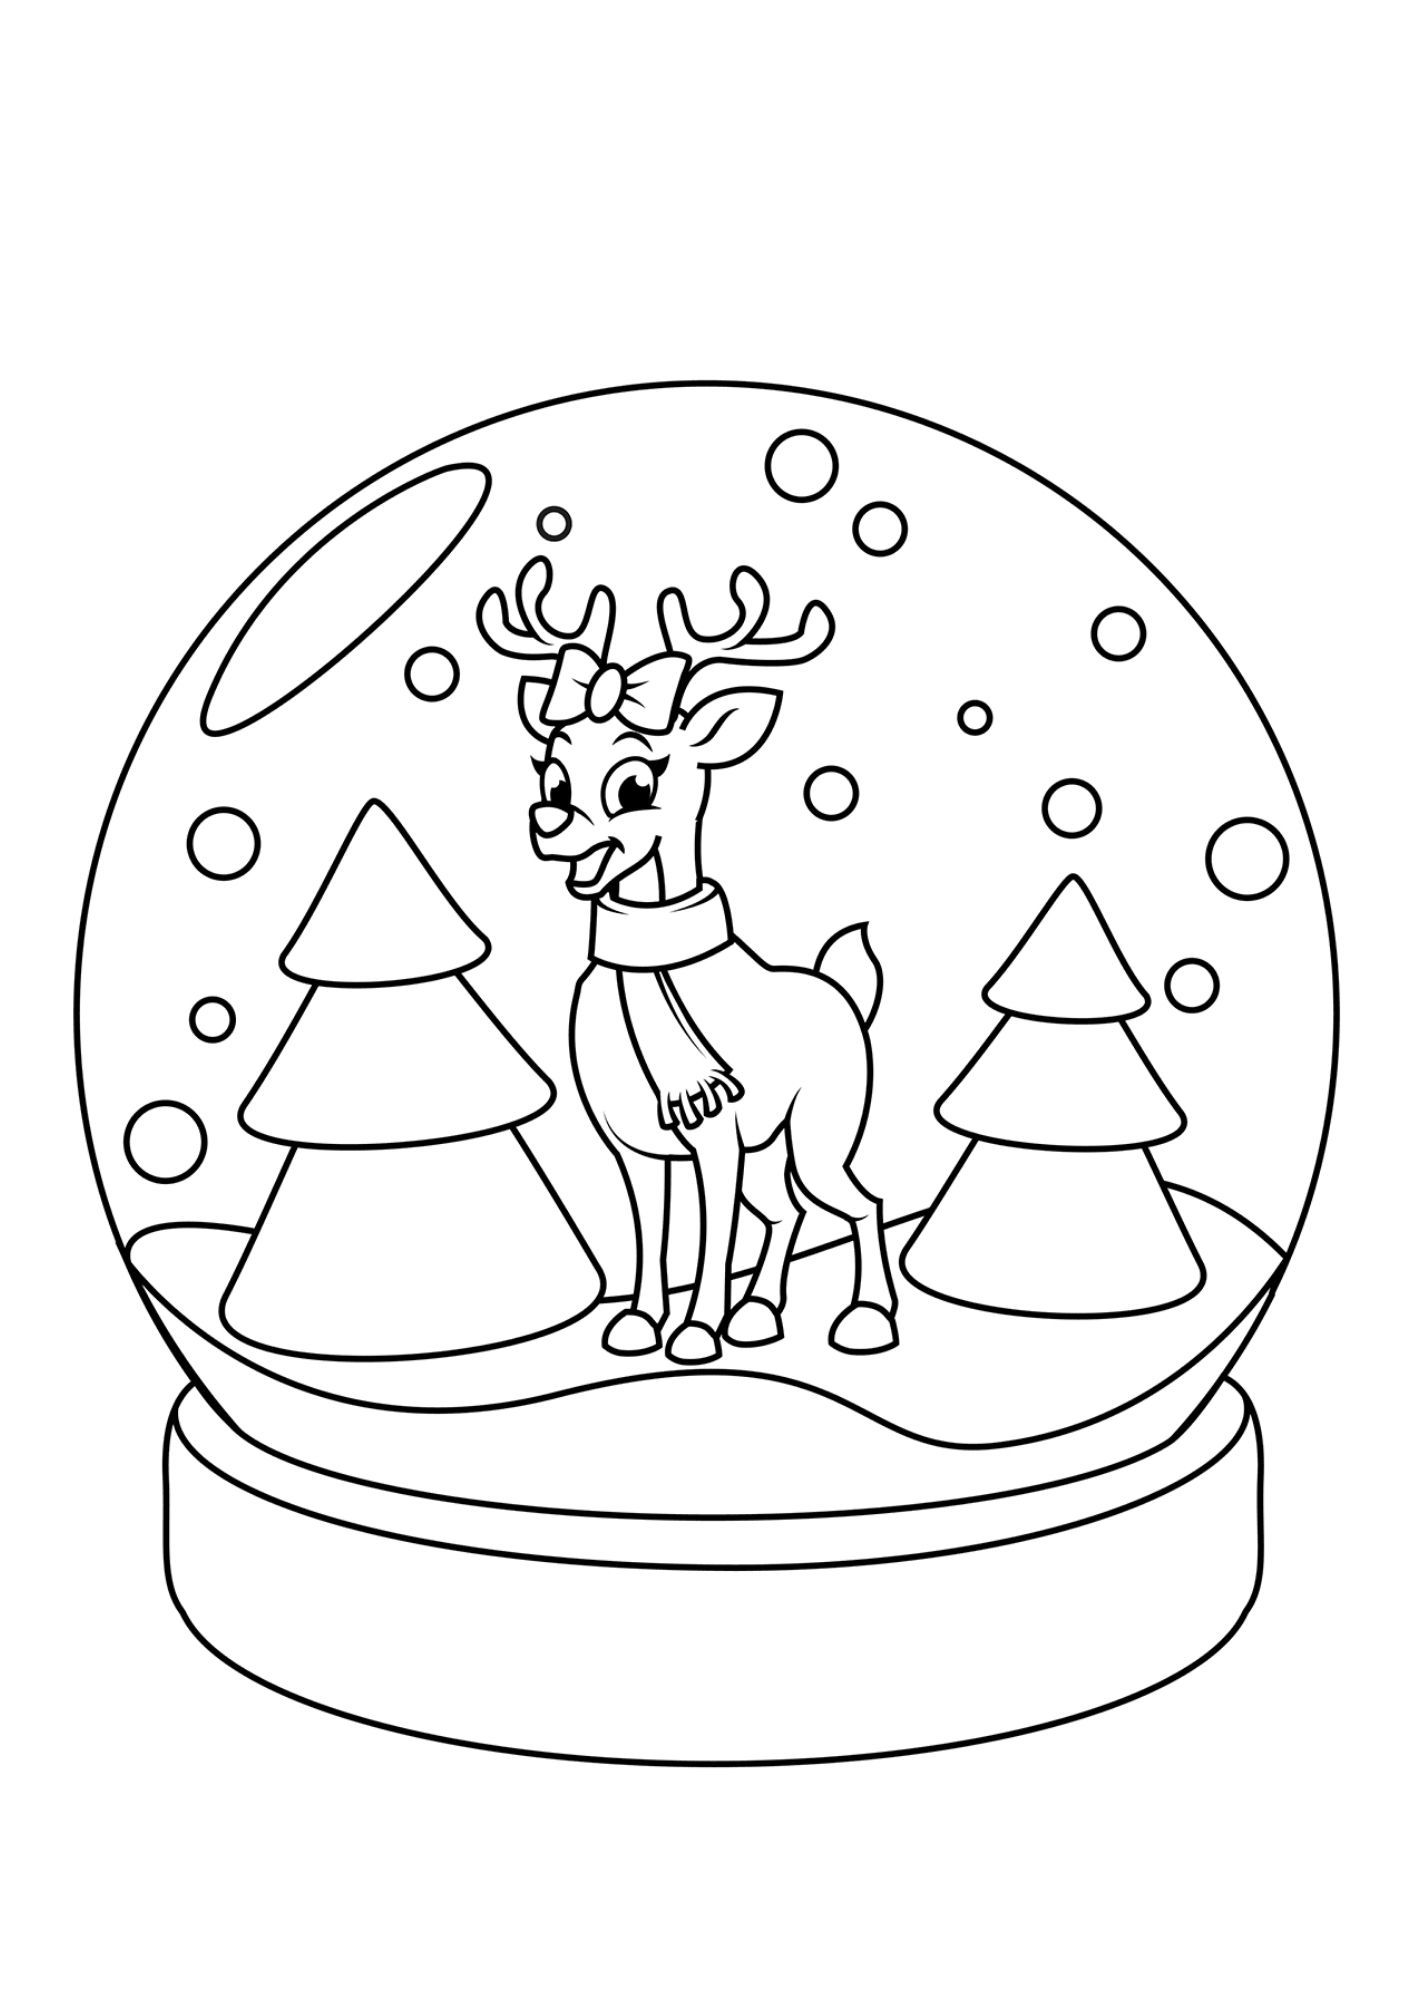 47 Christmas Drawings To Print And Color In Pdf Merry Christmas Coloring Pages Christmas Drawing Coloring Pages